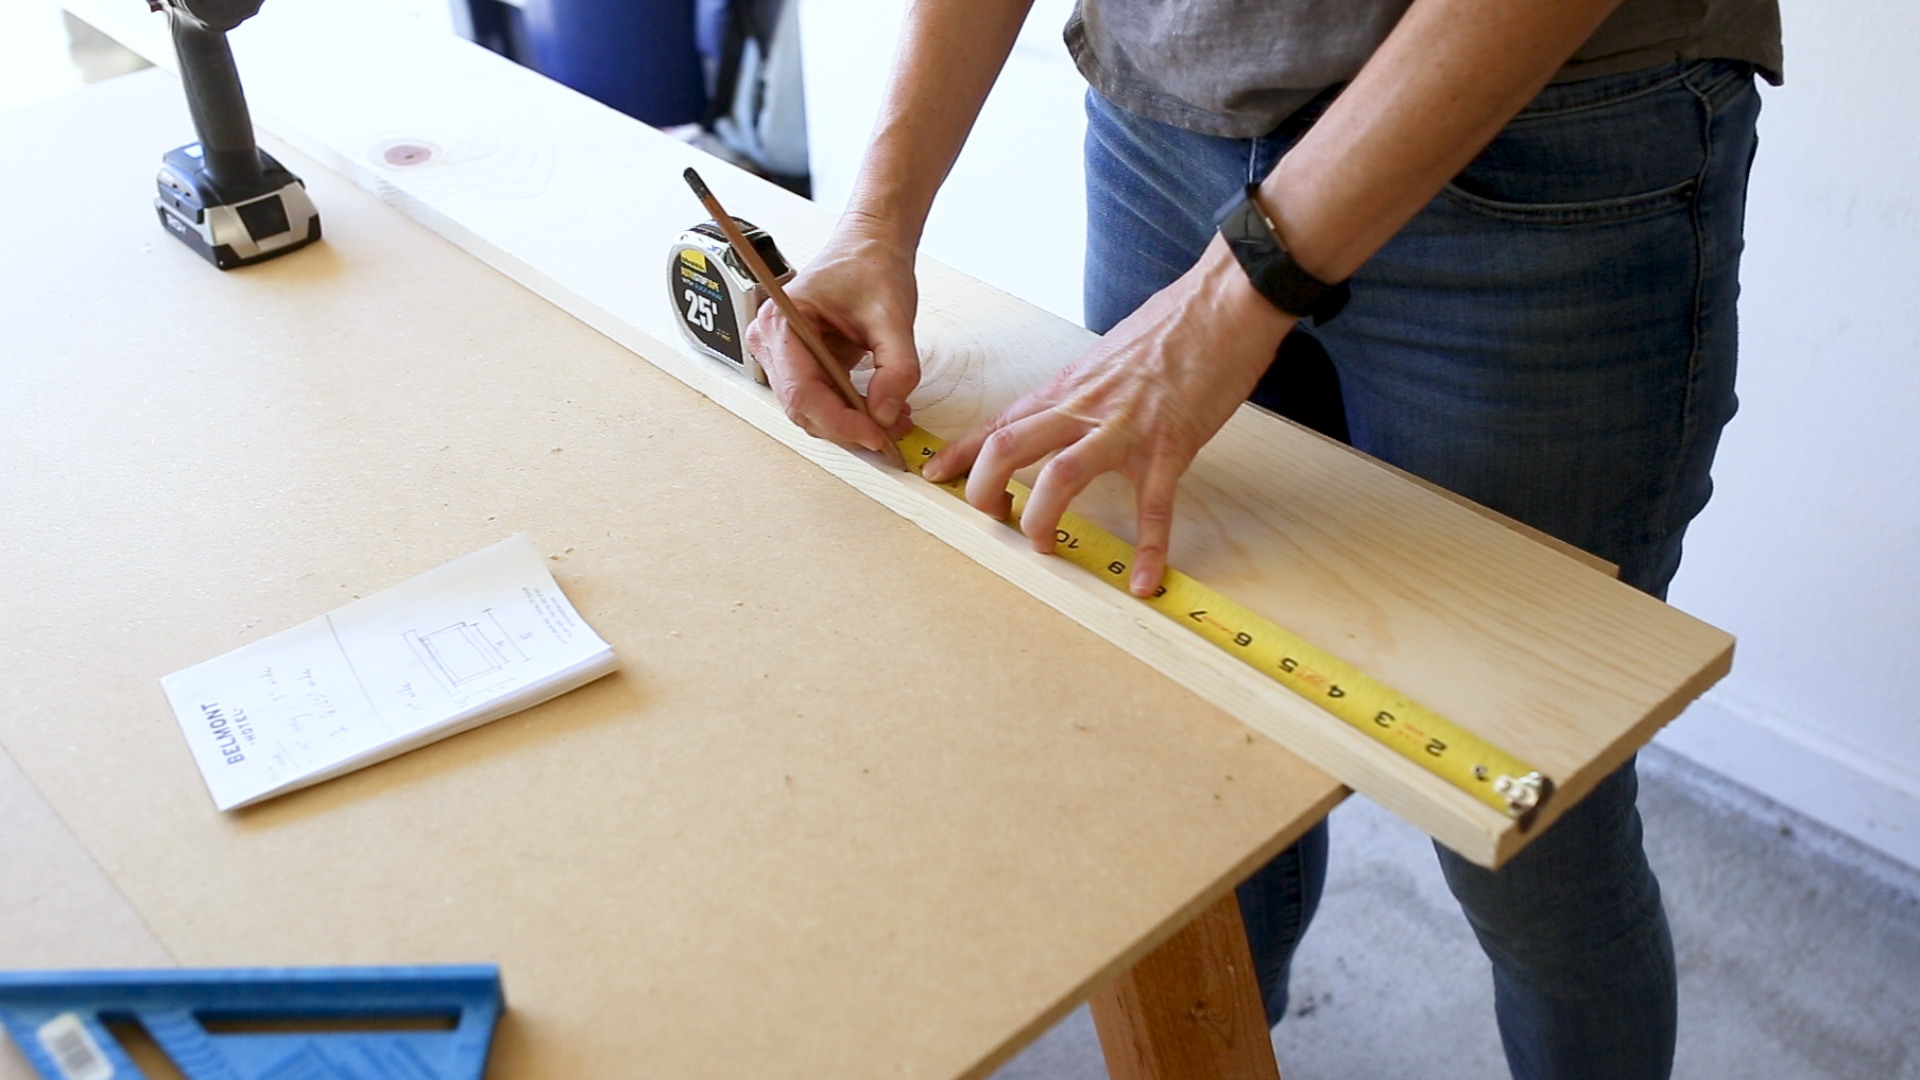 I started the project by picking up one 1x8 at Home Depot. I then measured for my three cuts